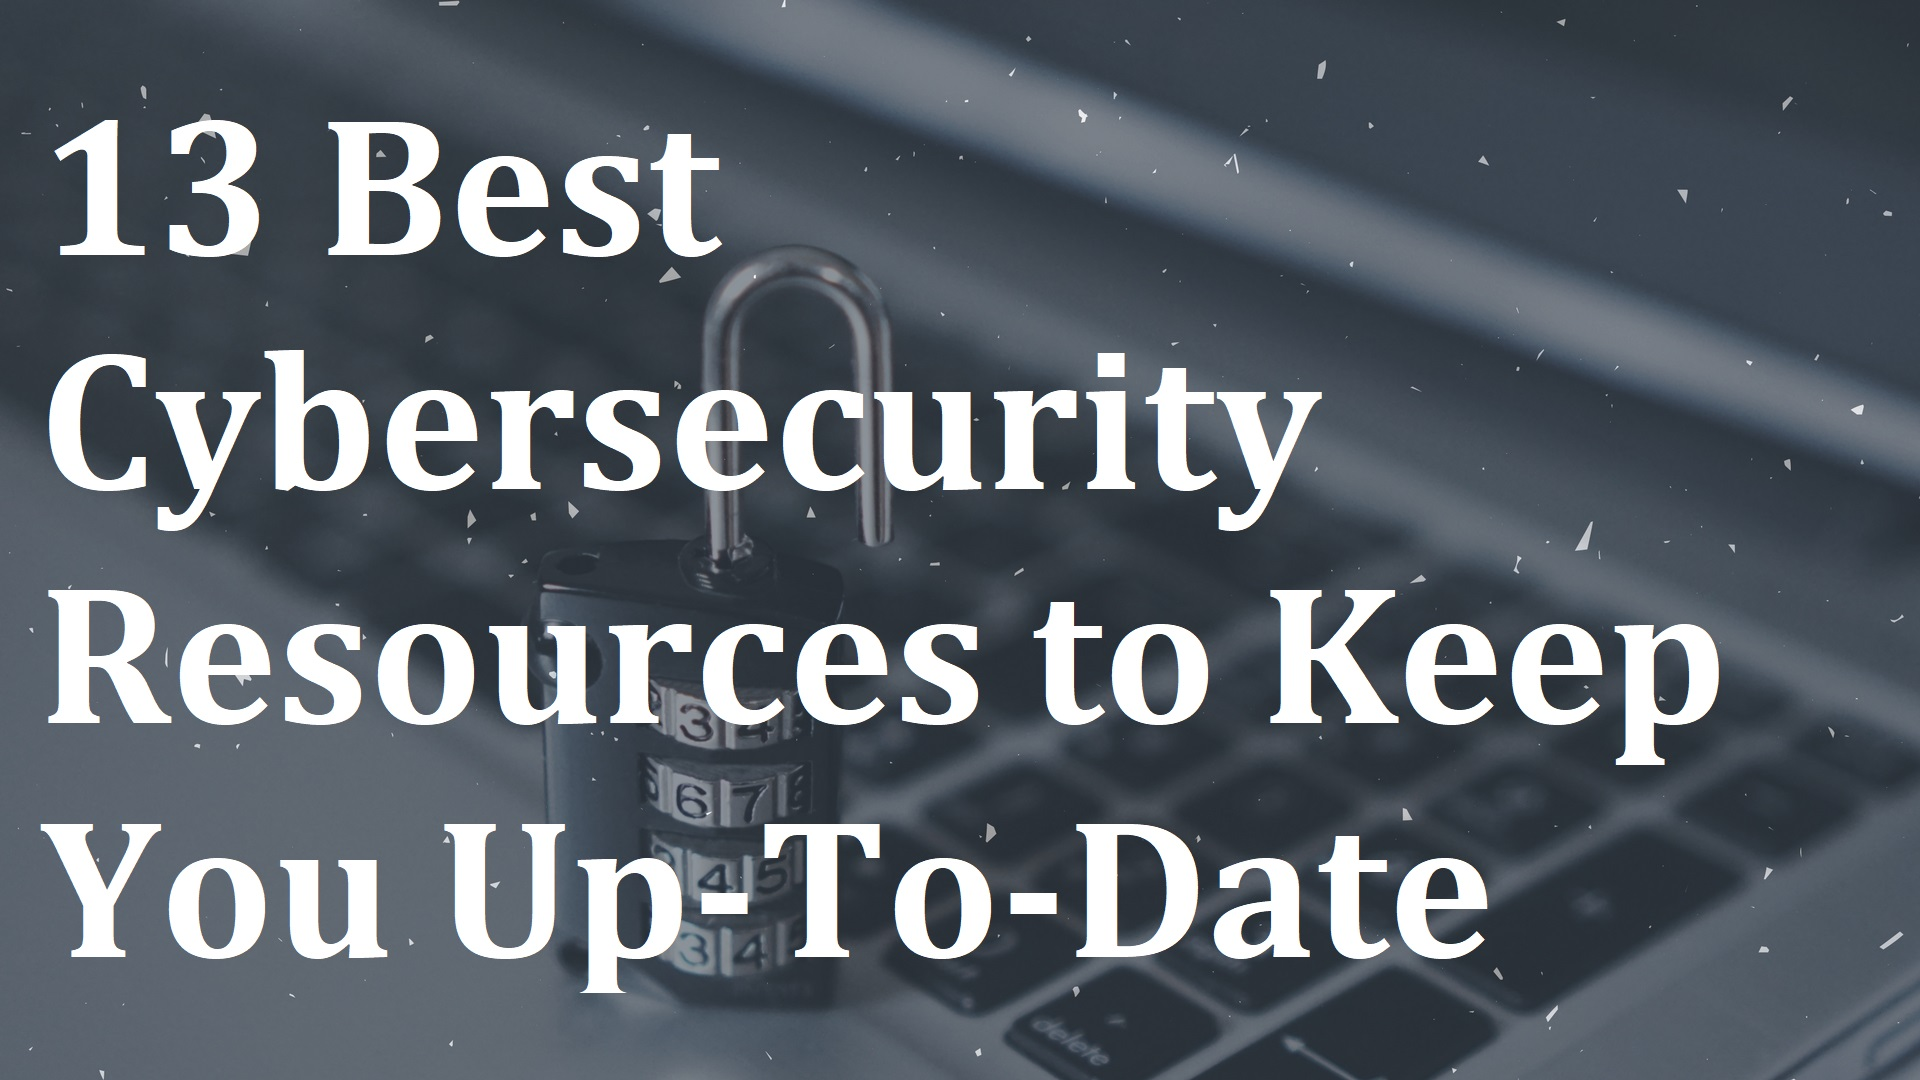 13 Best Cybersecurity Resources to Keep You Up-To-Date